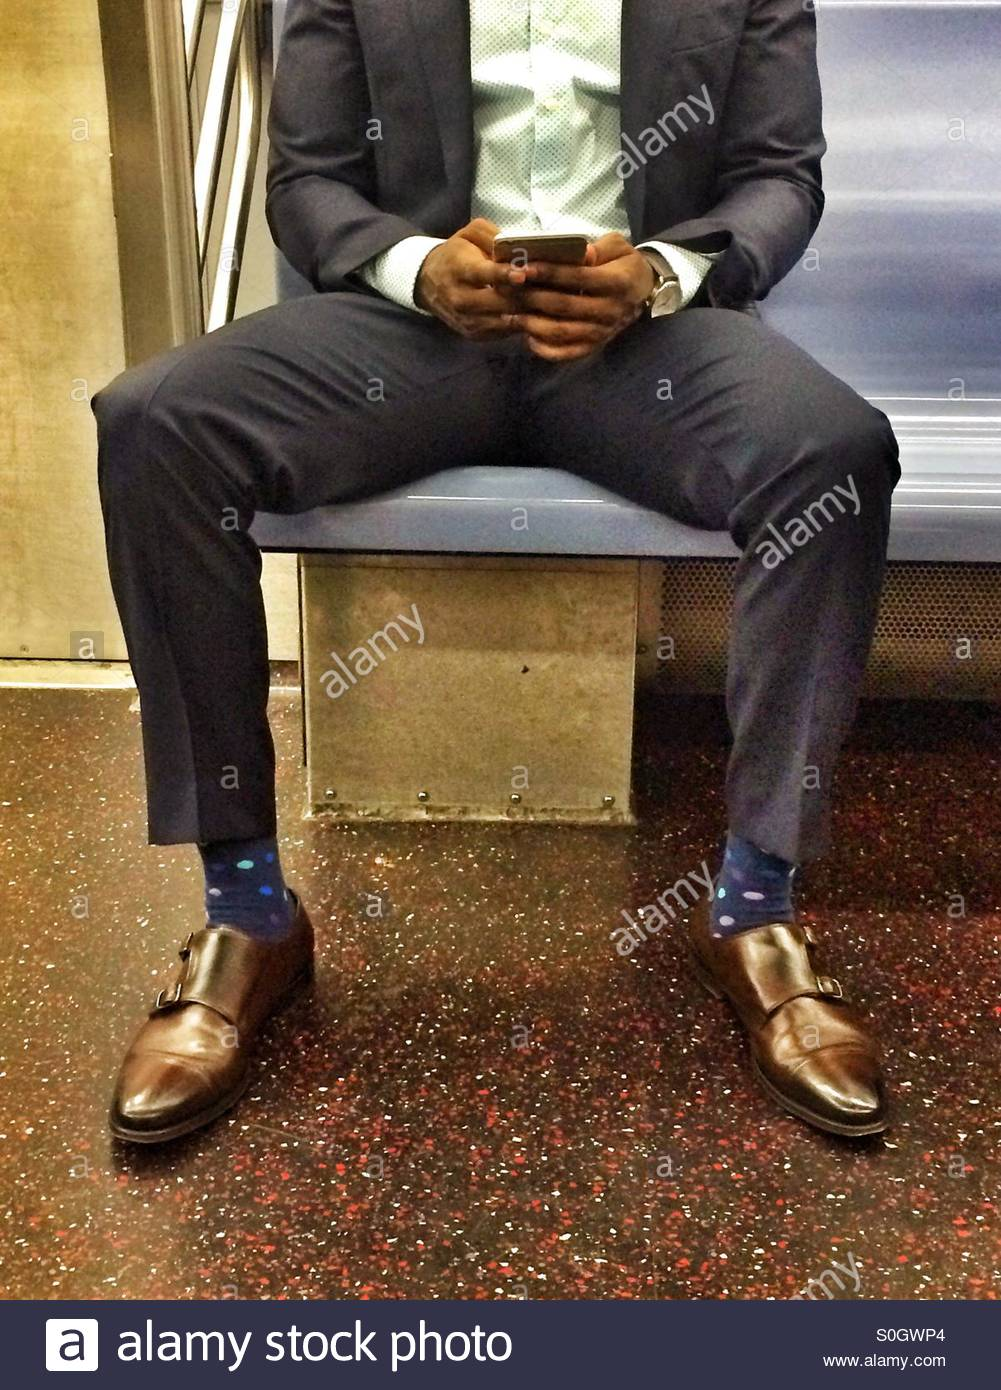 stylish-man-sitting-on-the-subway-with-a